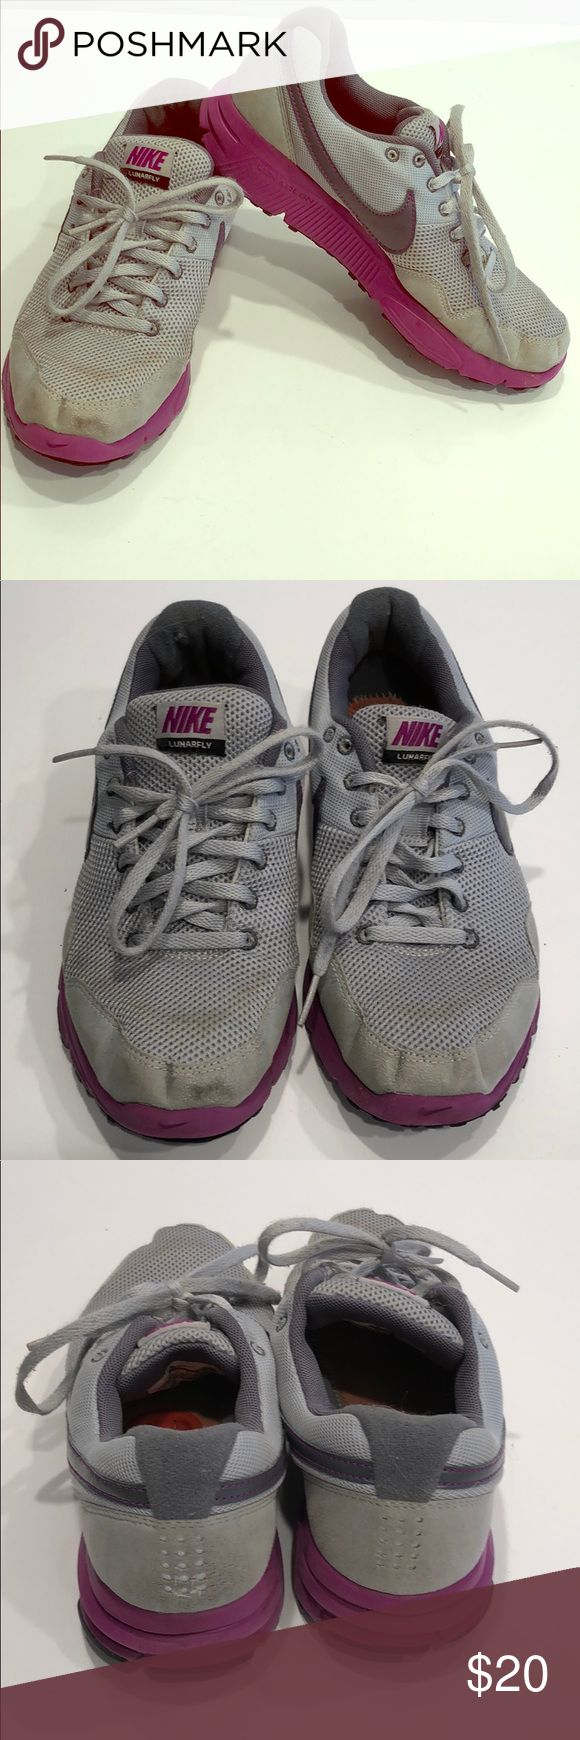 🏃♀️Ladies Nike shoes. Lunarfly .Fit girls🤛 Size 6.5 ladies Nike Lunarfly shoes . Worn , need new soles. Nike Shoes Sneakers